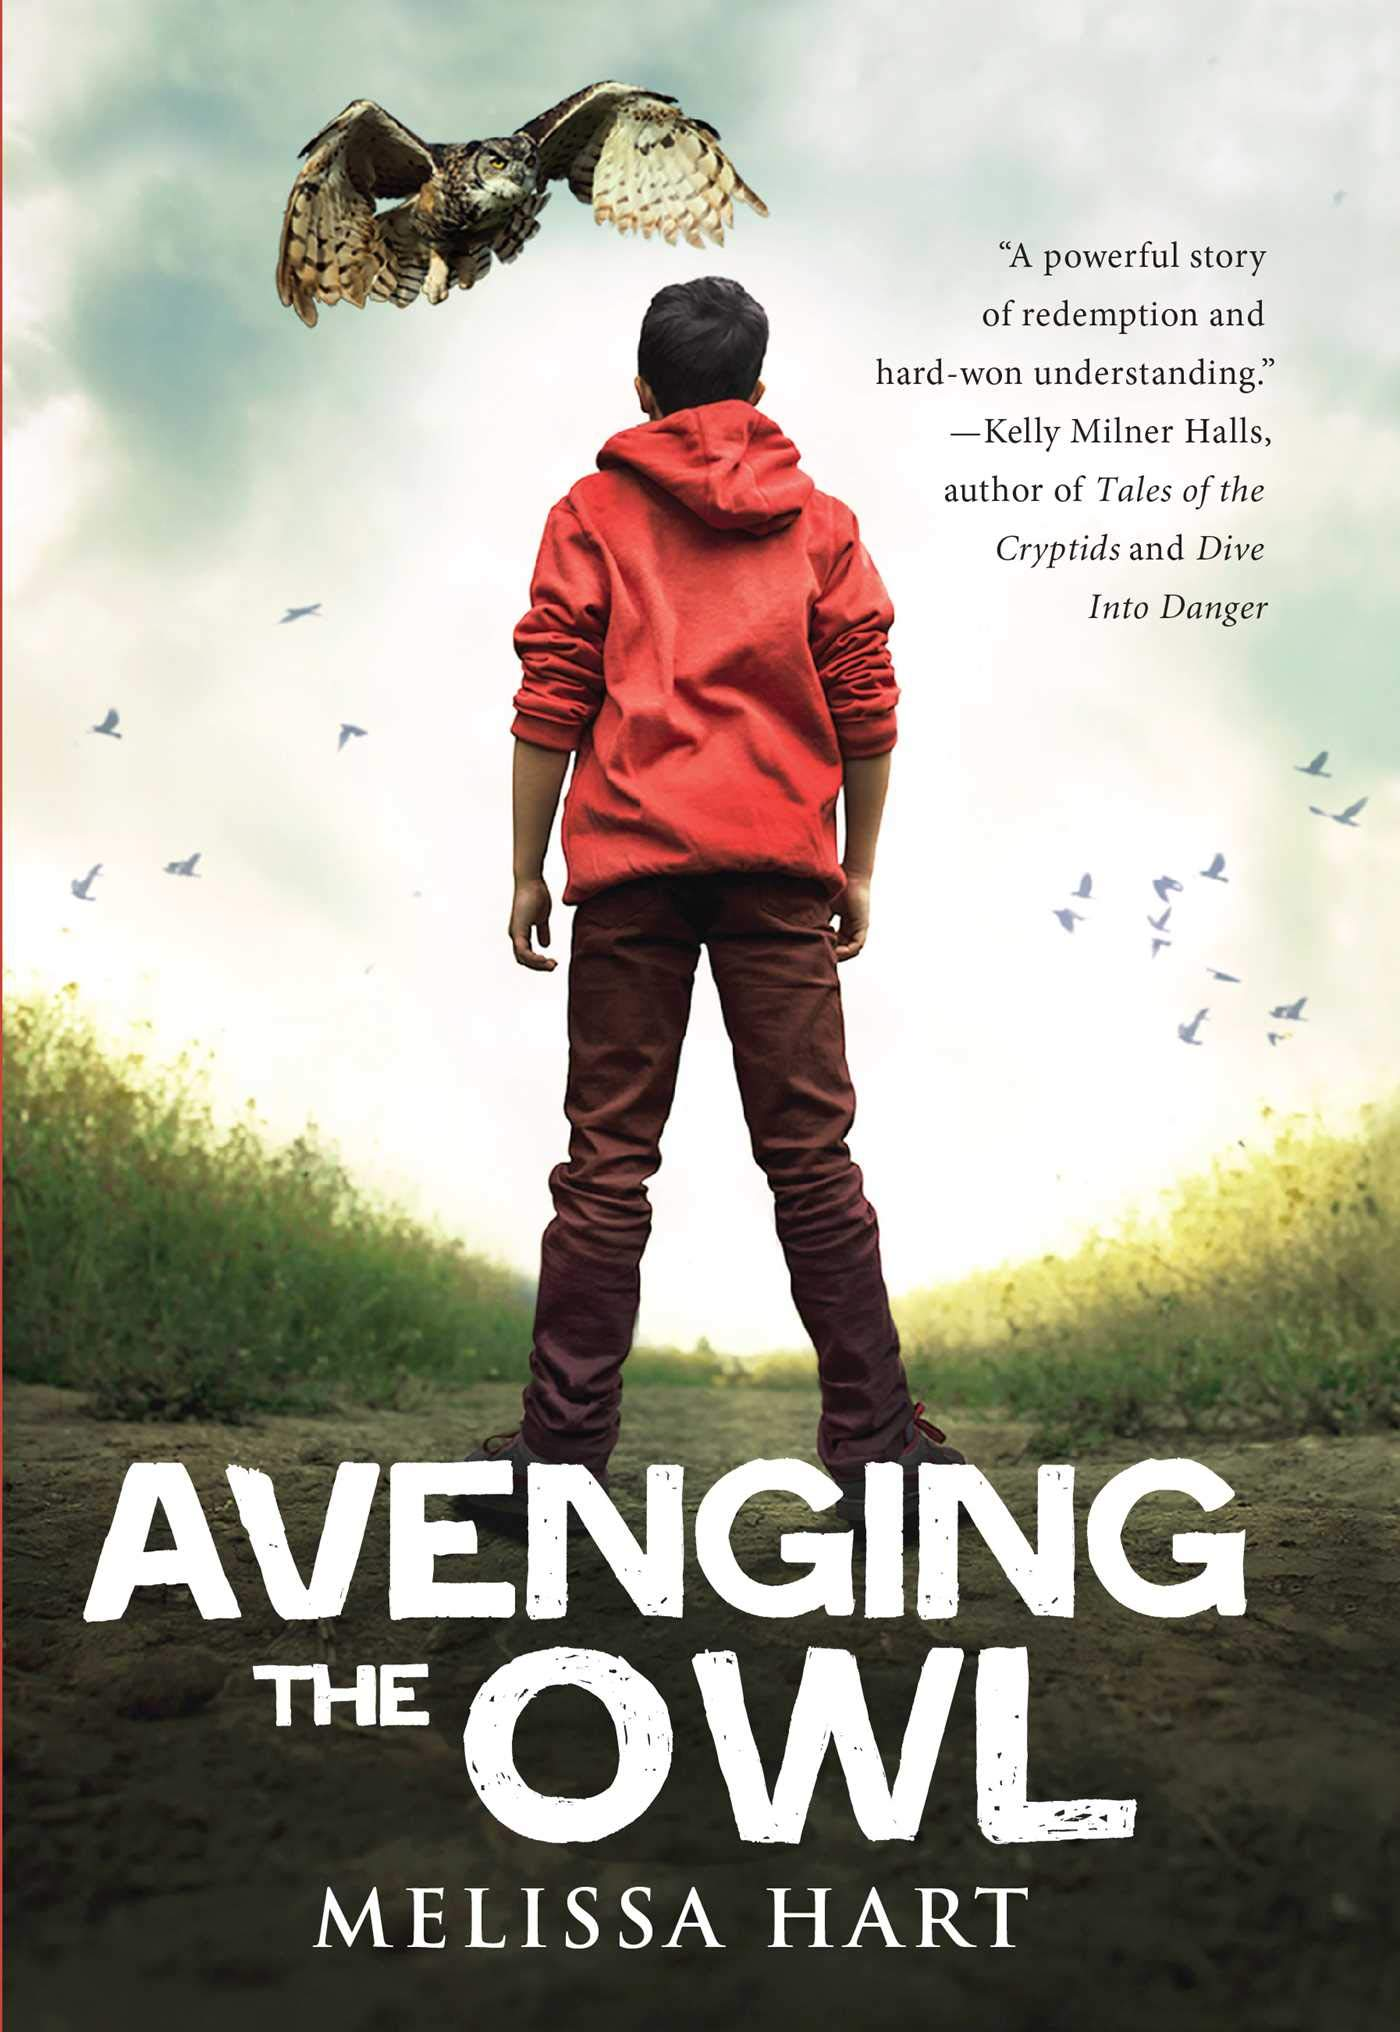 Avenging the Owl: Melissa Hart: 9781510726284: Amazon com: Books